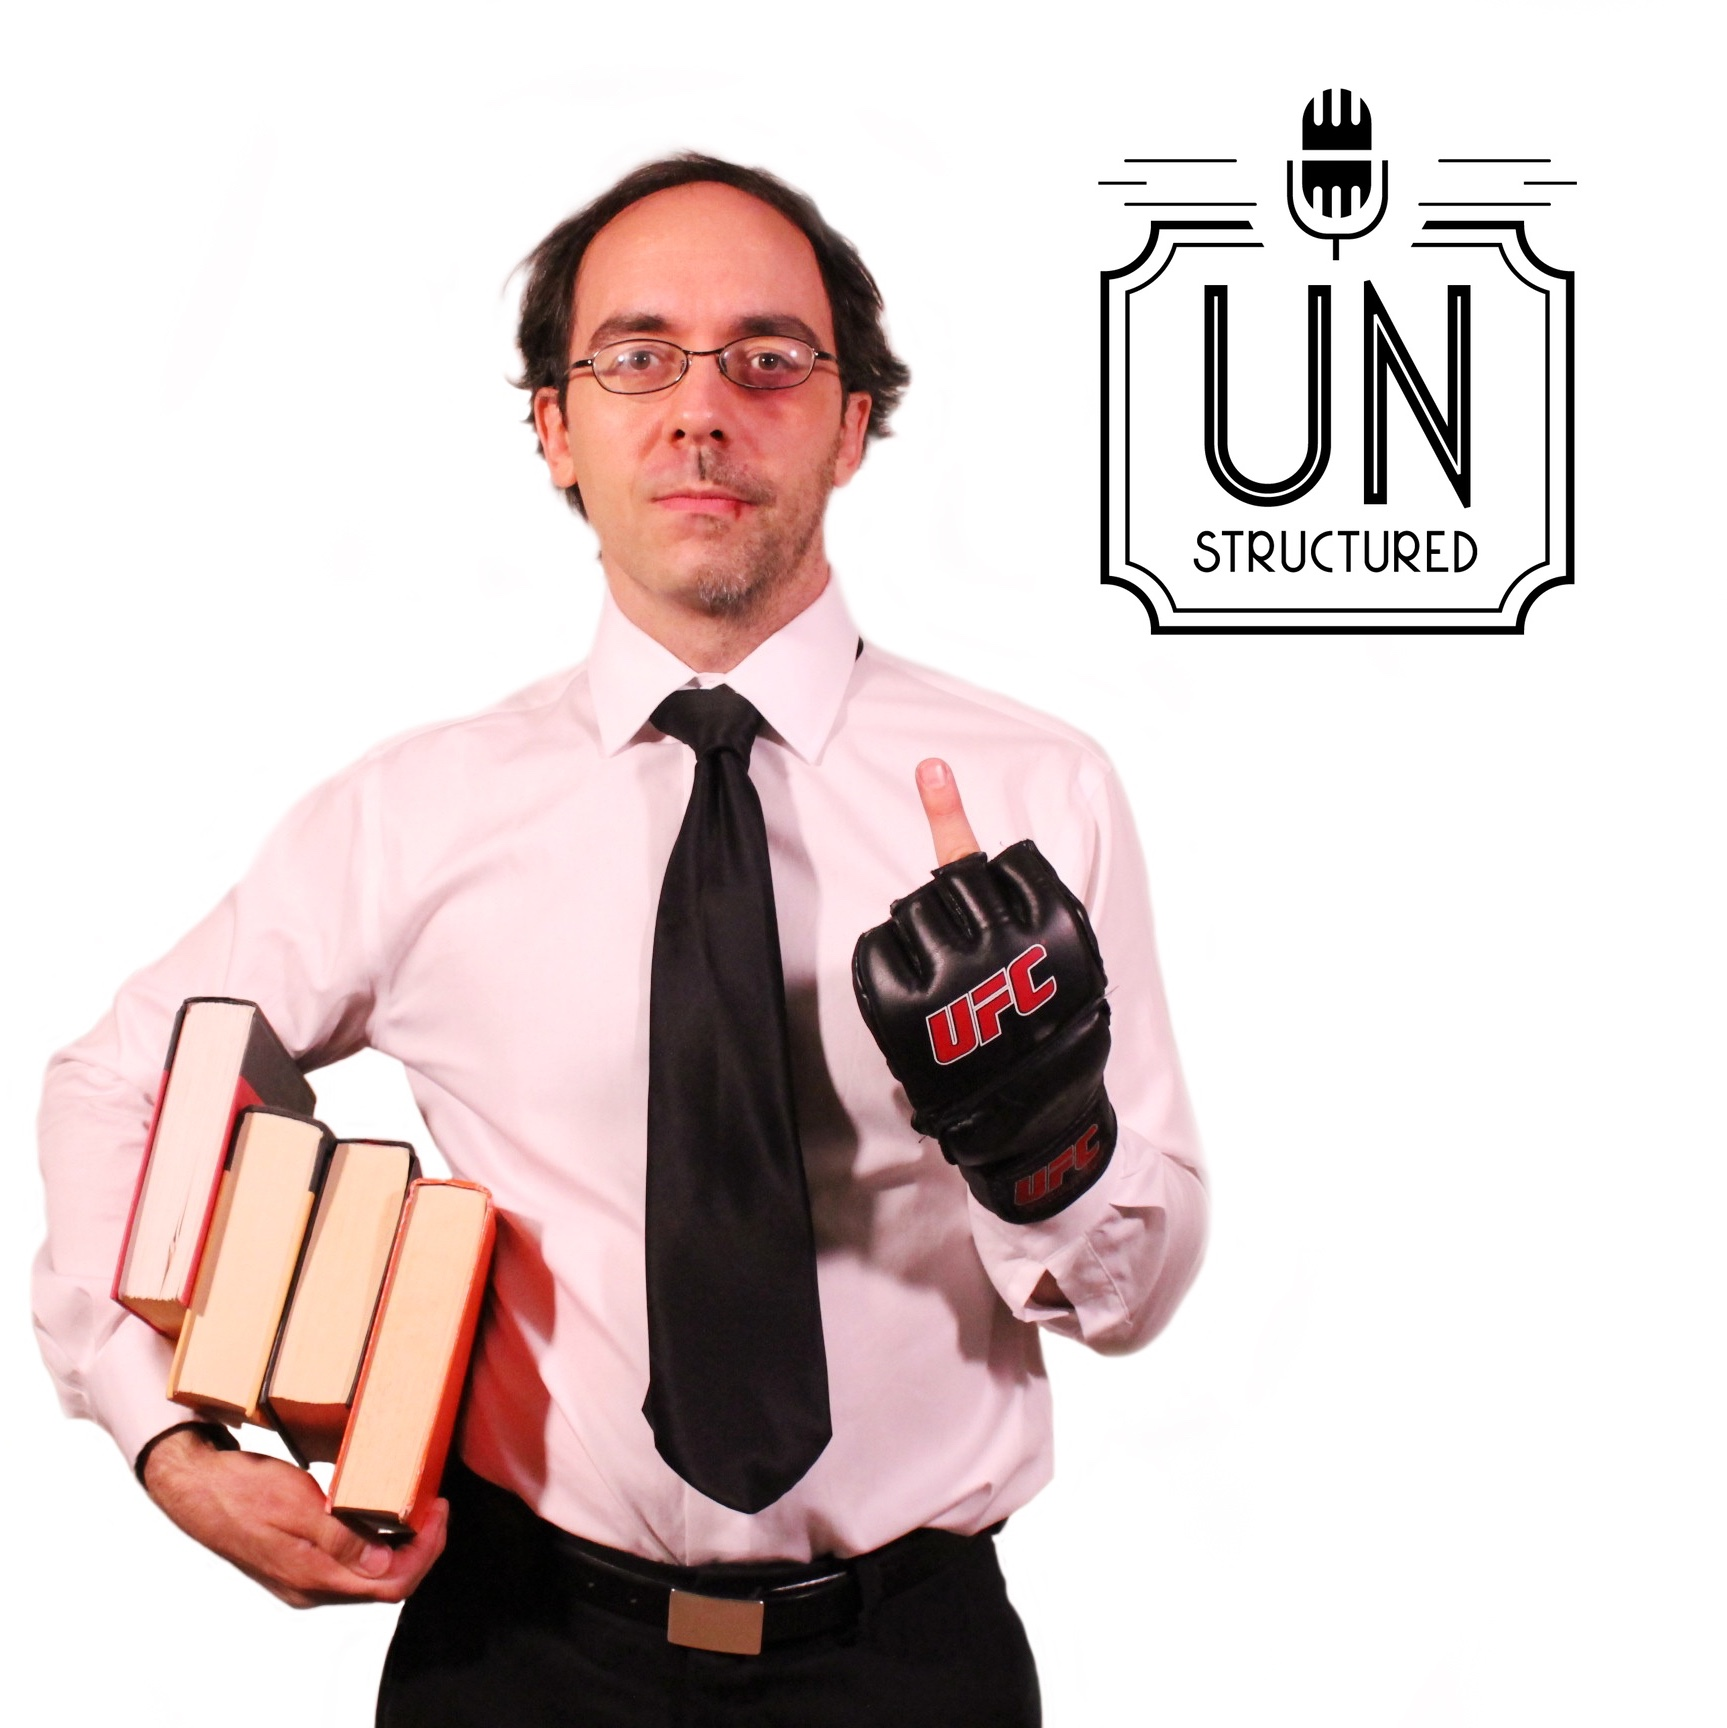 018 - Daniele Bolelli - Unique wide-ranging and well-researched unstructured interviews hosted by Eric Hunley UnstructuredPod Dynamic Informal Conversations